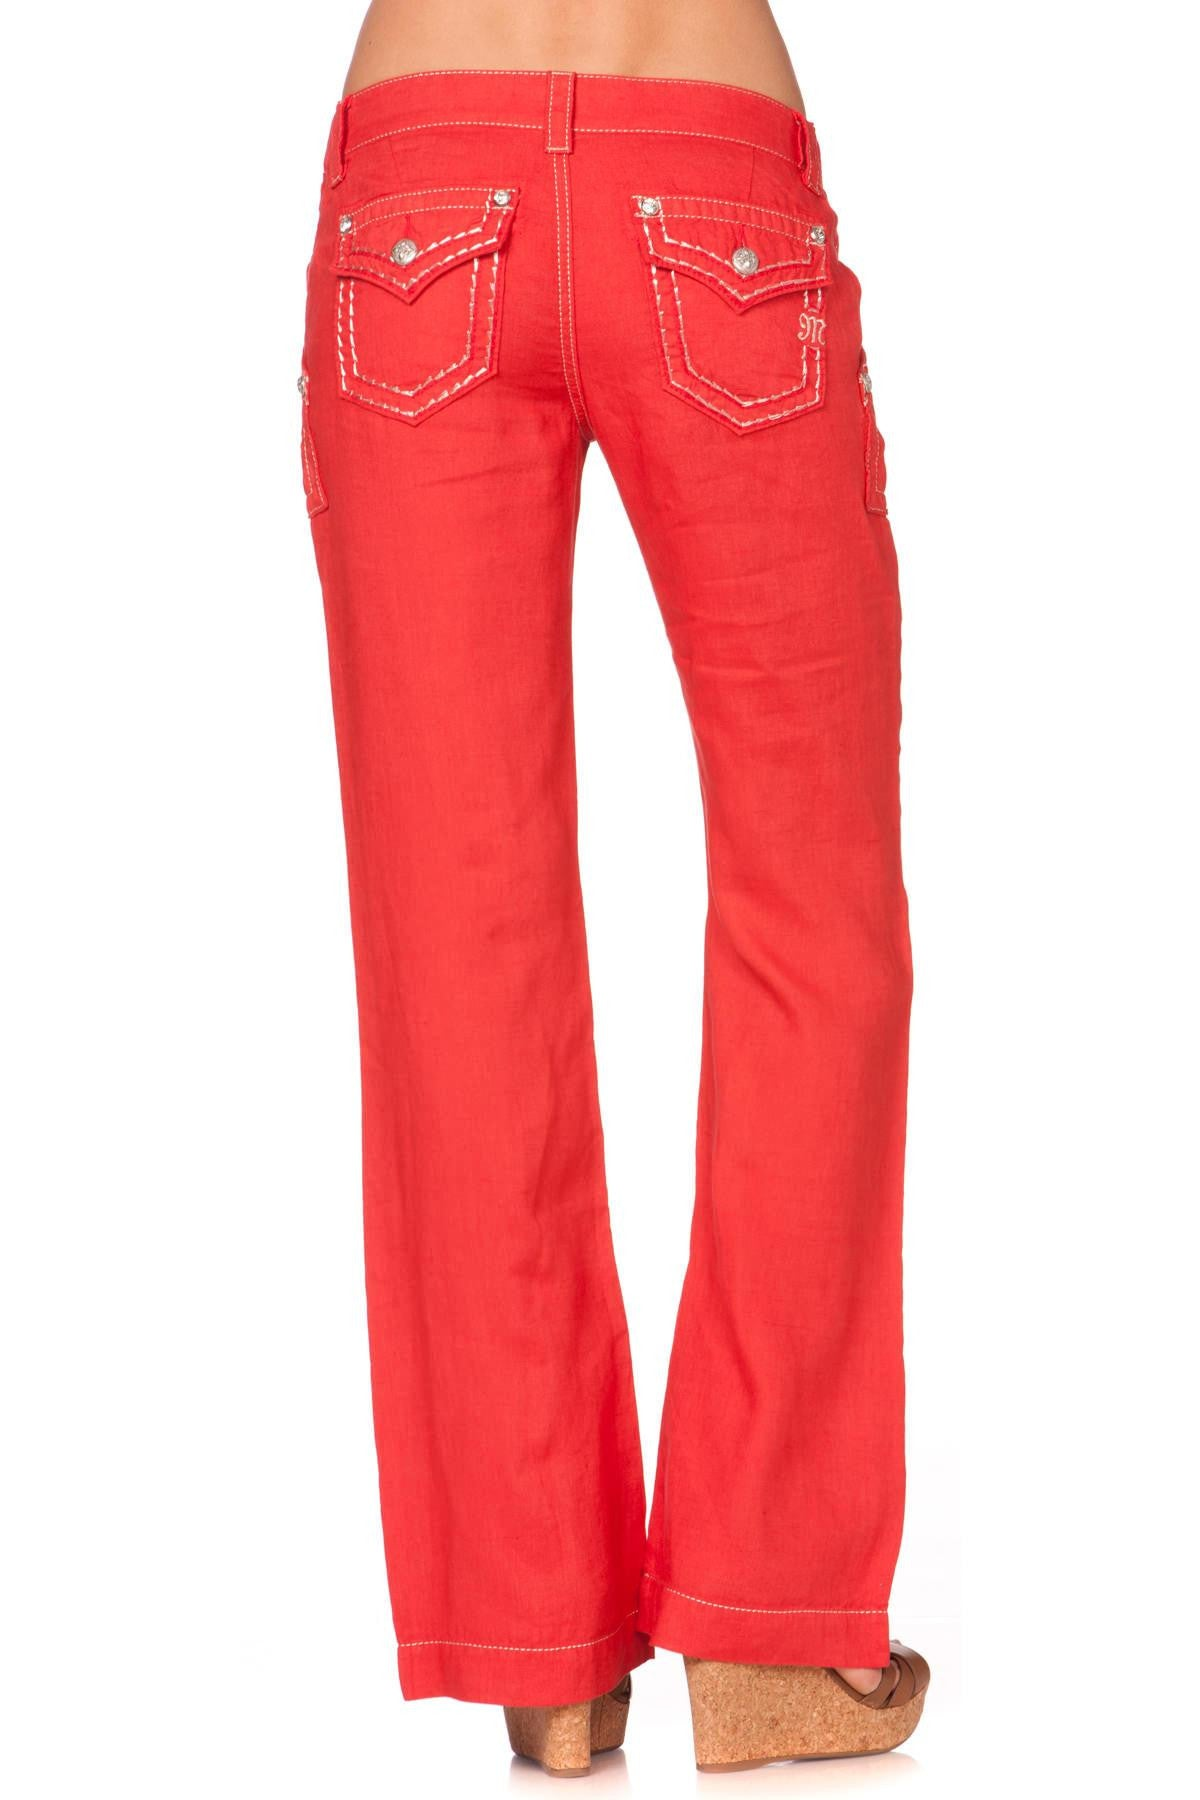 Miss Me Red Linen Pants